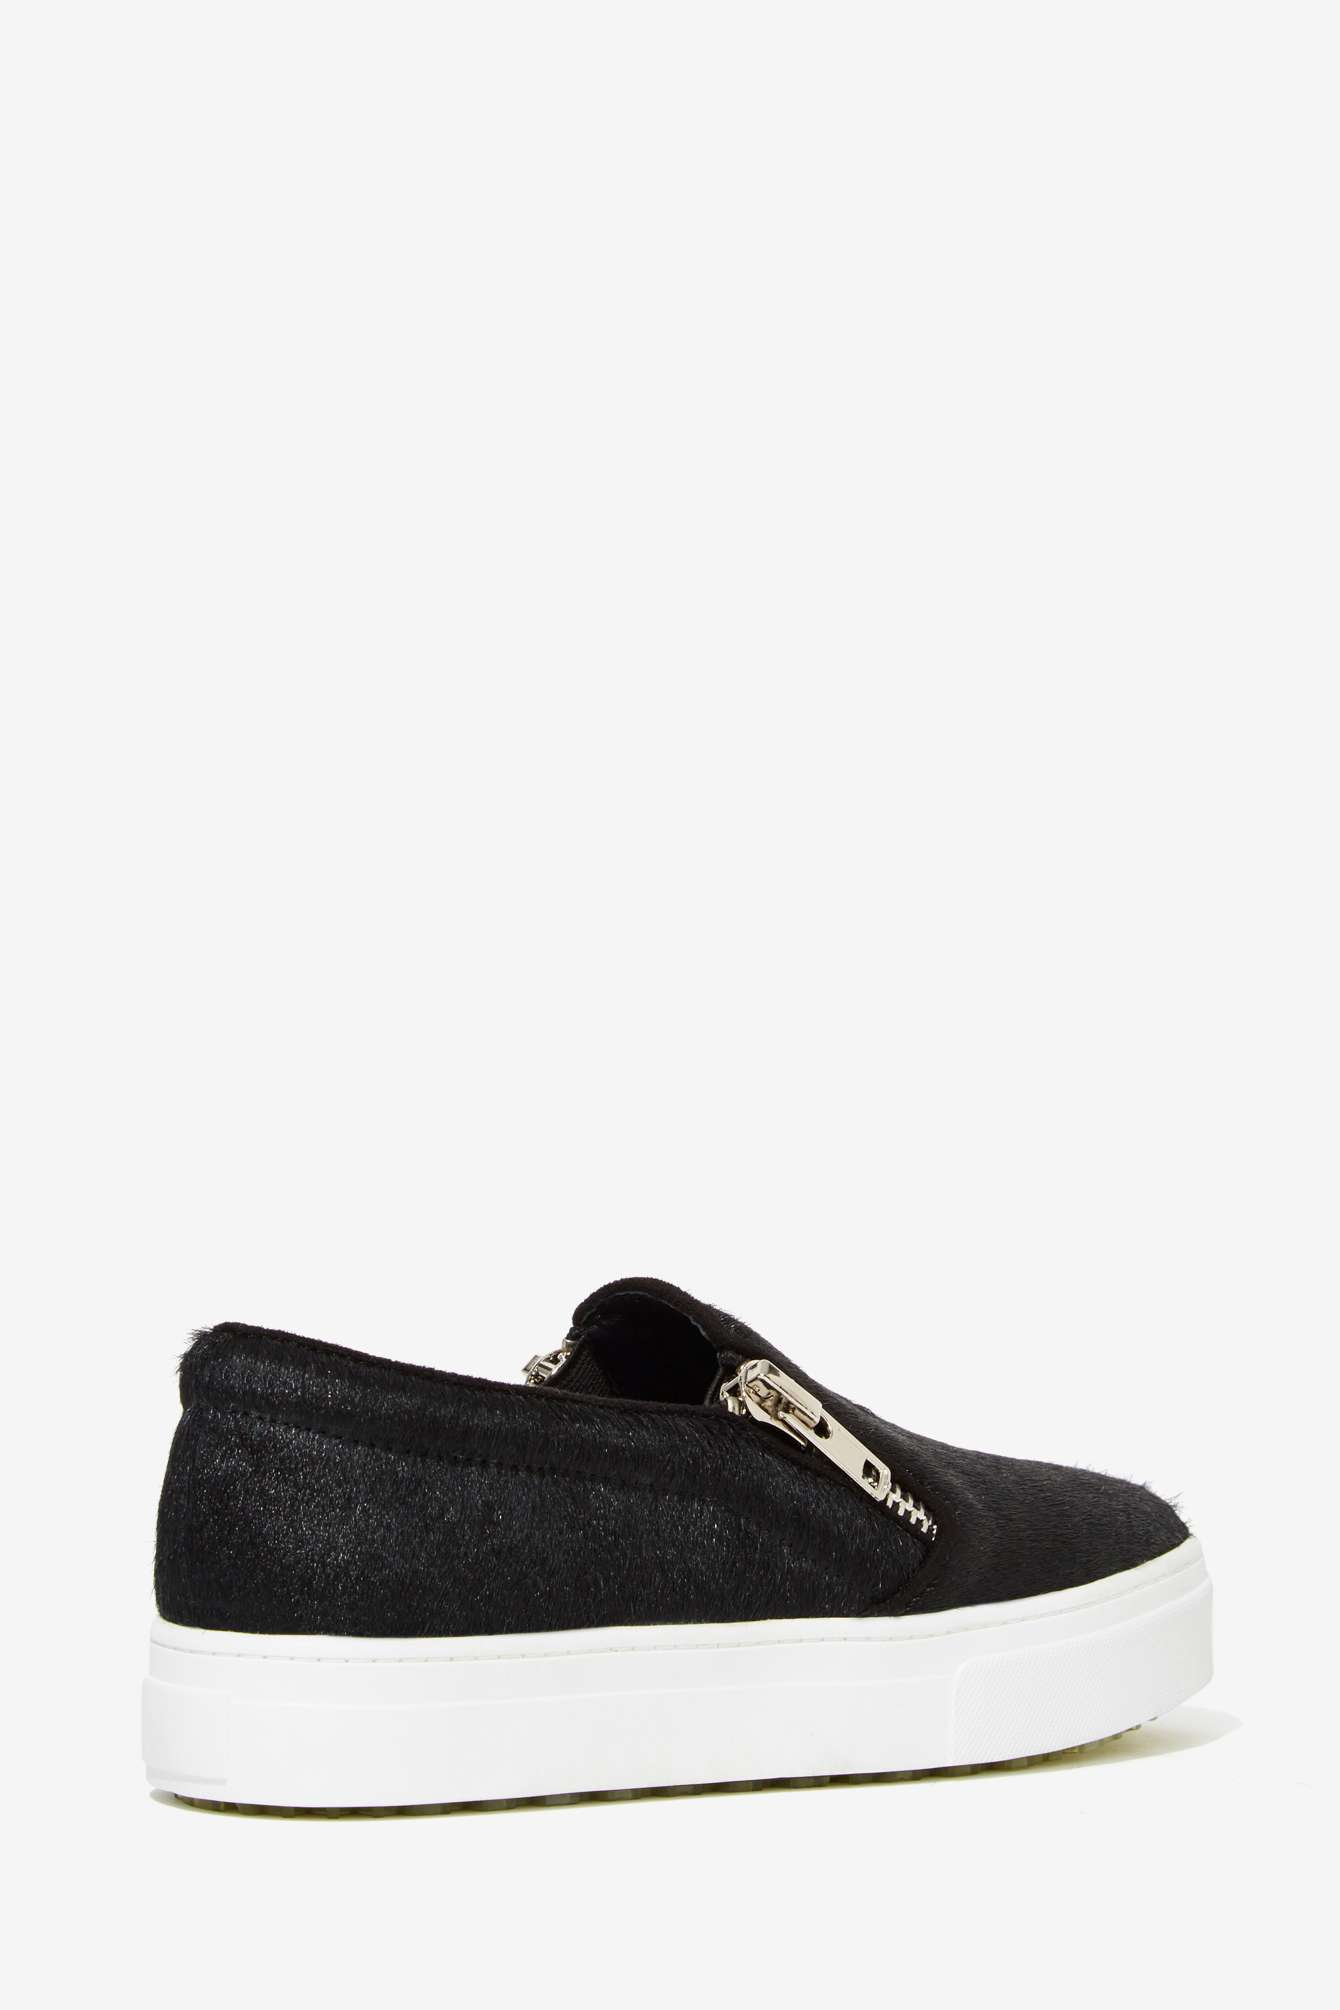 Pony Hair Slip On Sneakers ($ - $): 30 of items - Shop Pony Hair Slip On Sneakers from ALL your favorite stores & find HUGE SAVINGS up to 80% off Pony Hair Slip On Sneakers, including GREAT DEALS like Vince Shoes | Vince Pony Hair Slip On Sneakers | Color: Gray | .